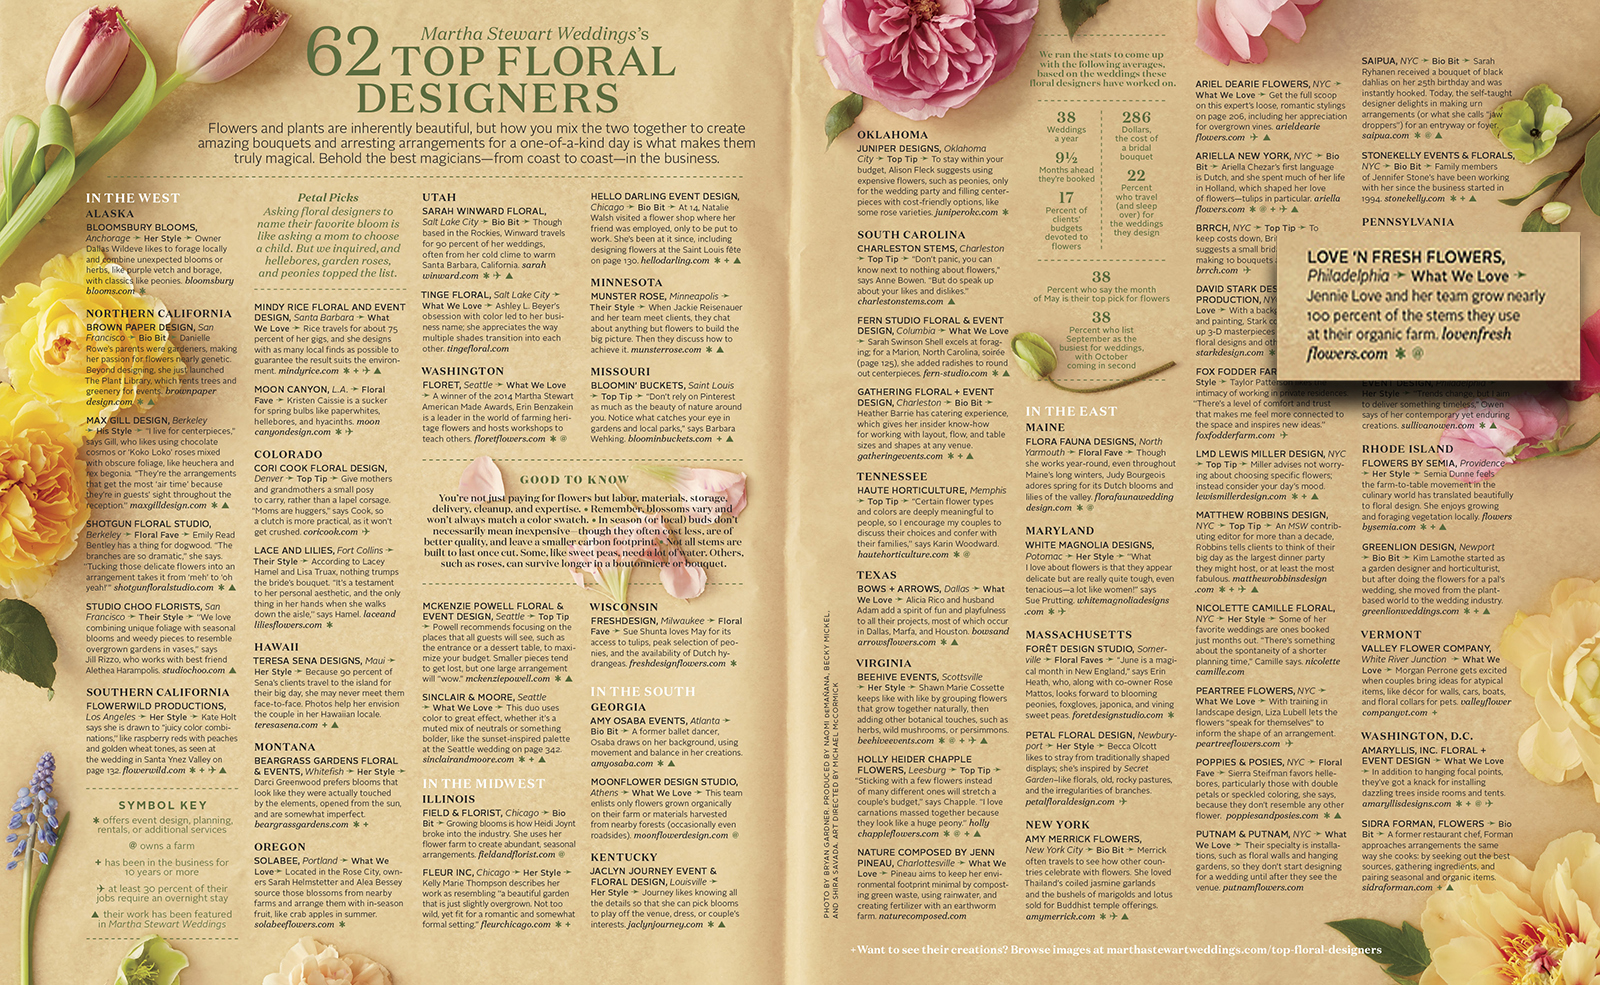 Martha Stewart Weddings Top 62 Floral Designers List in the Spring 2015 issue